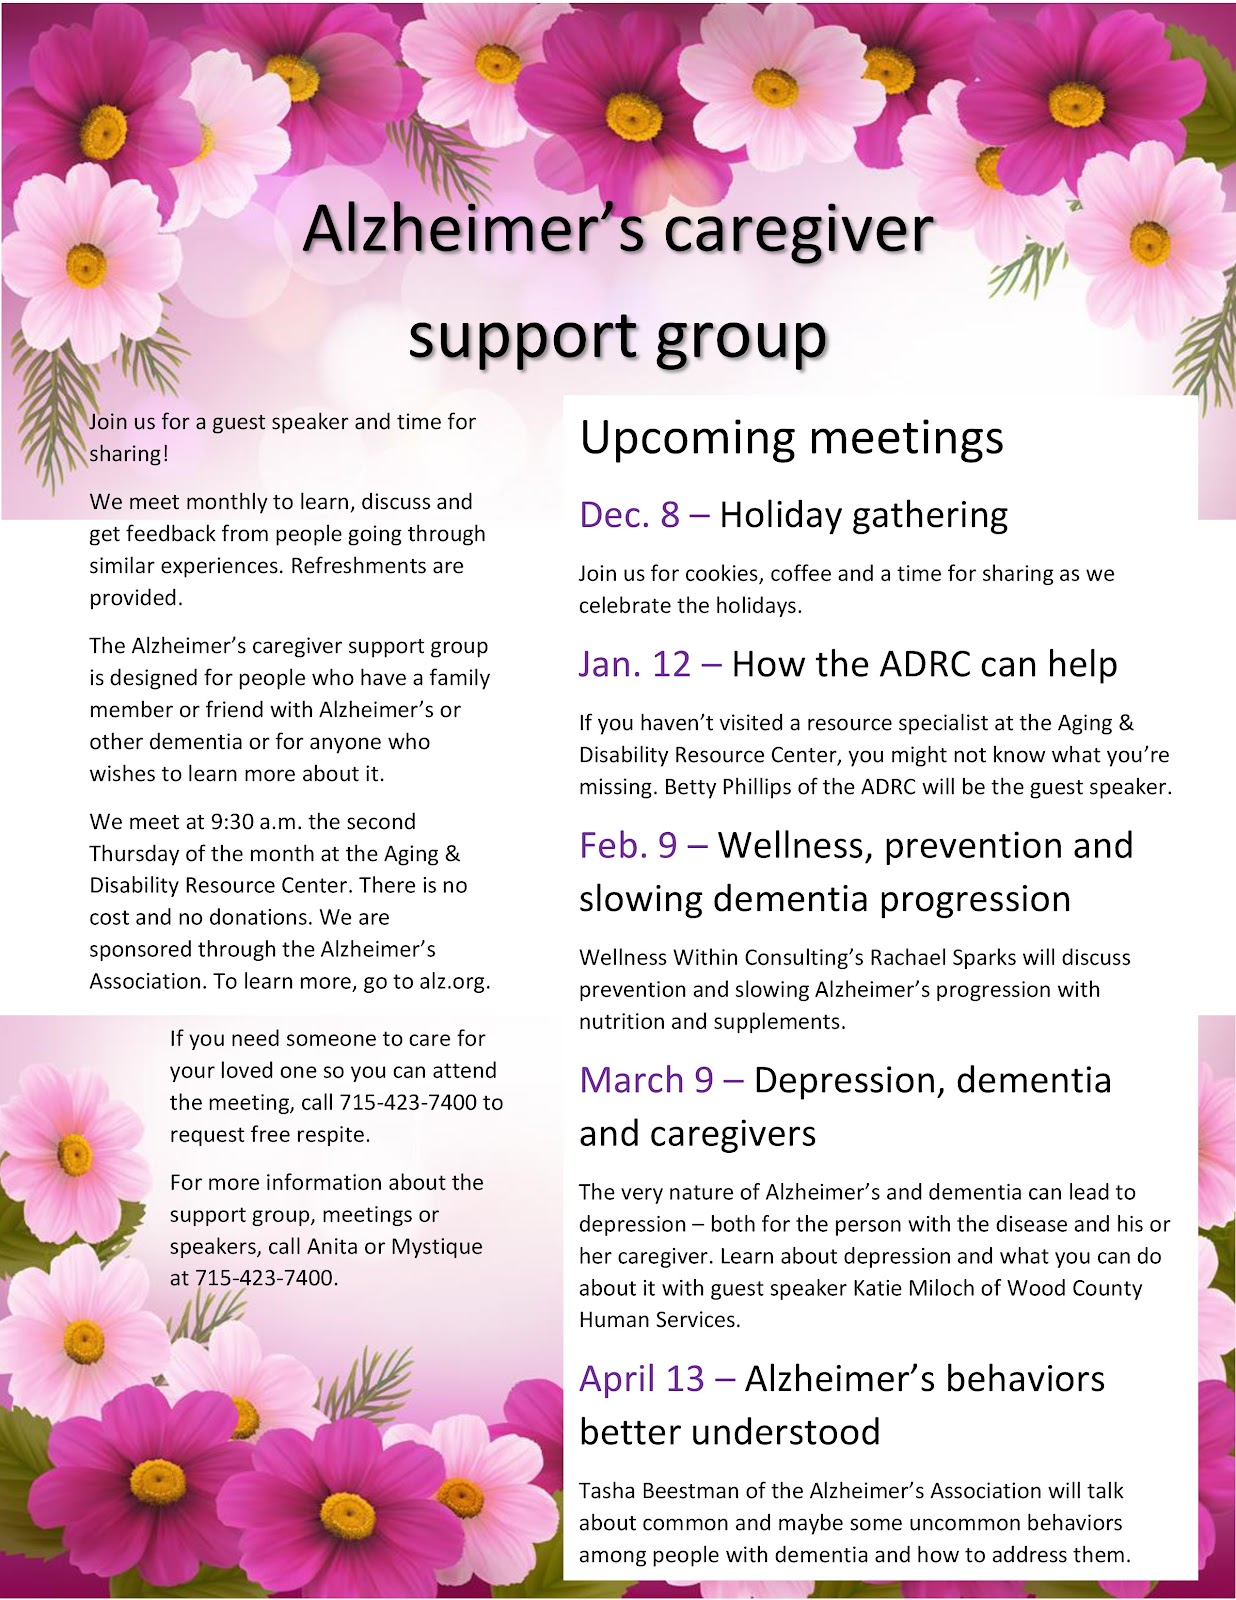 alz support group calendar Jan to April 2017-page-0.jpg